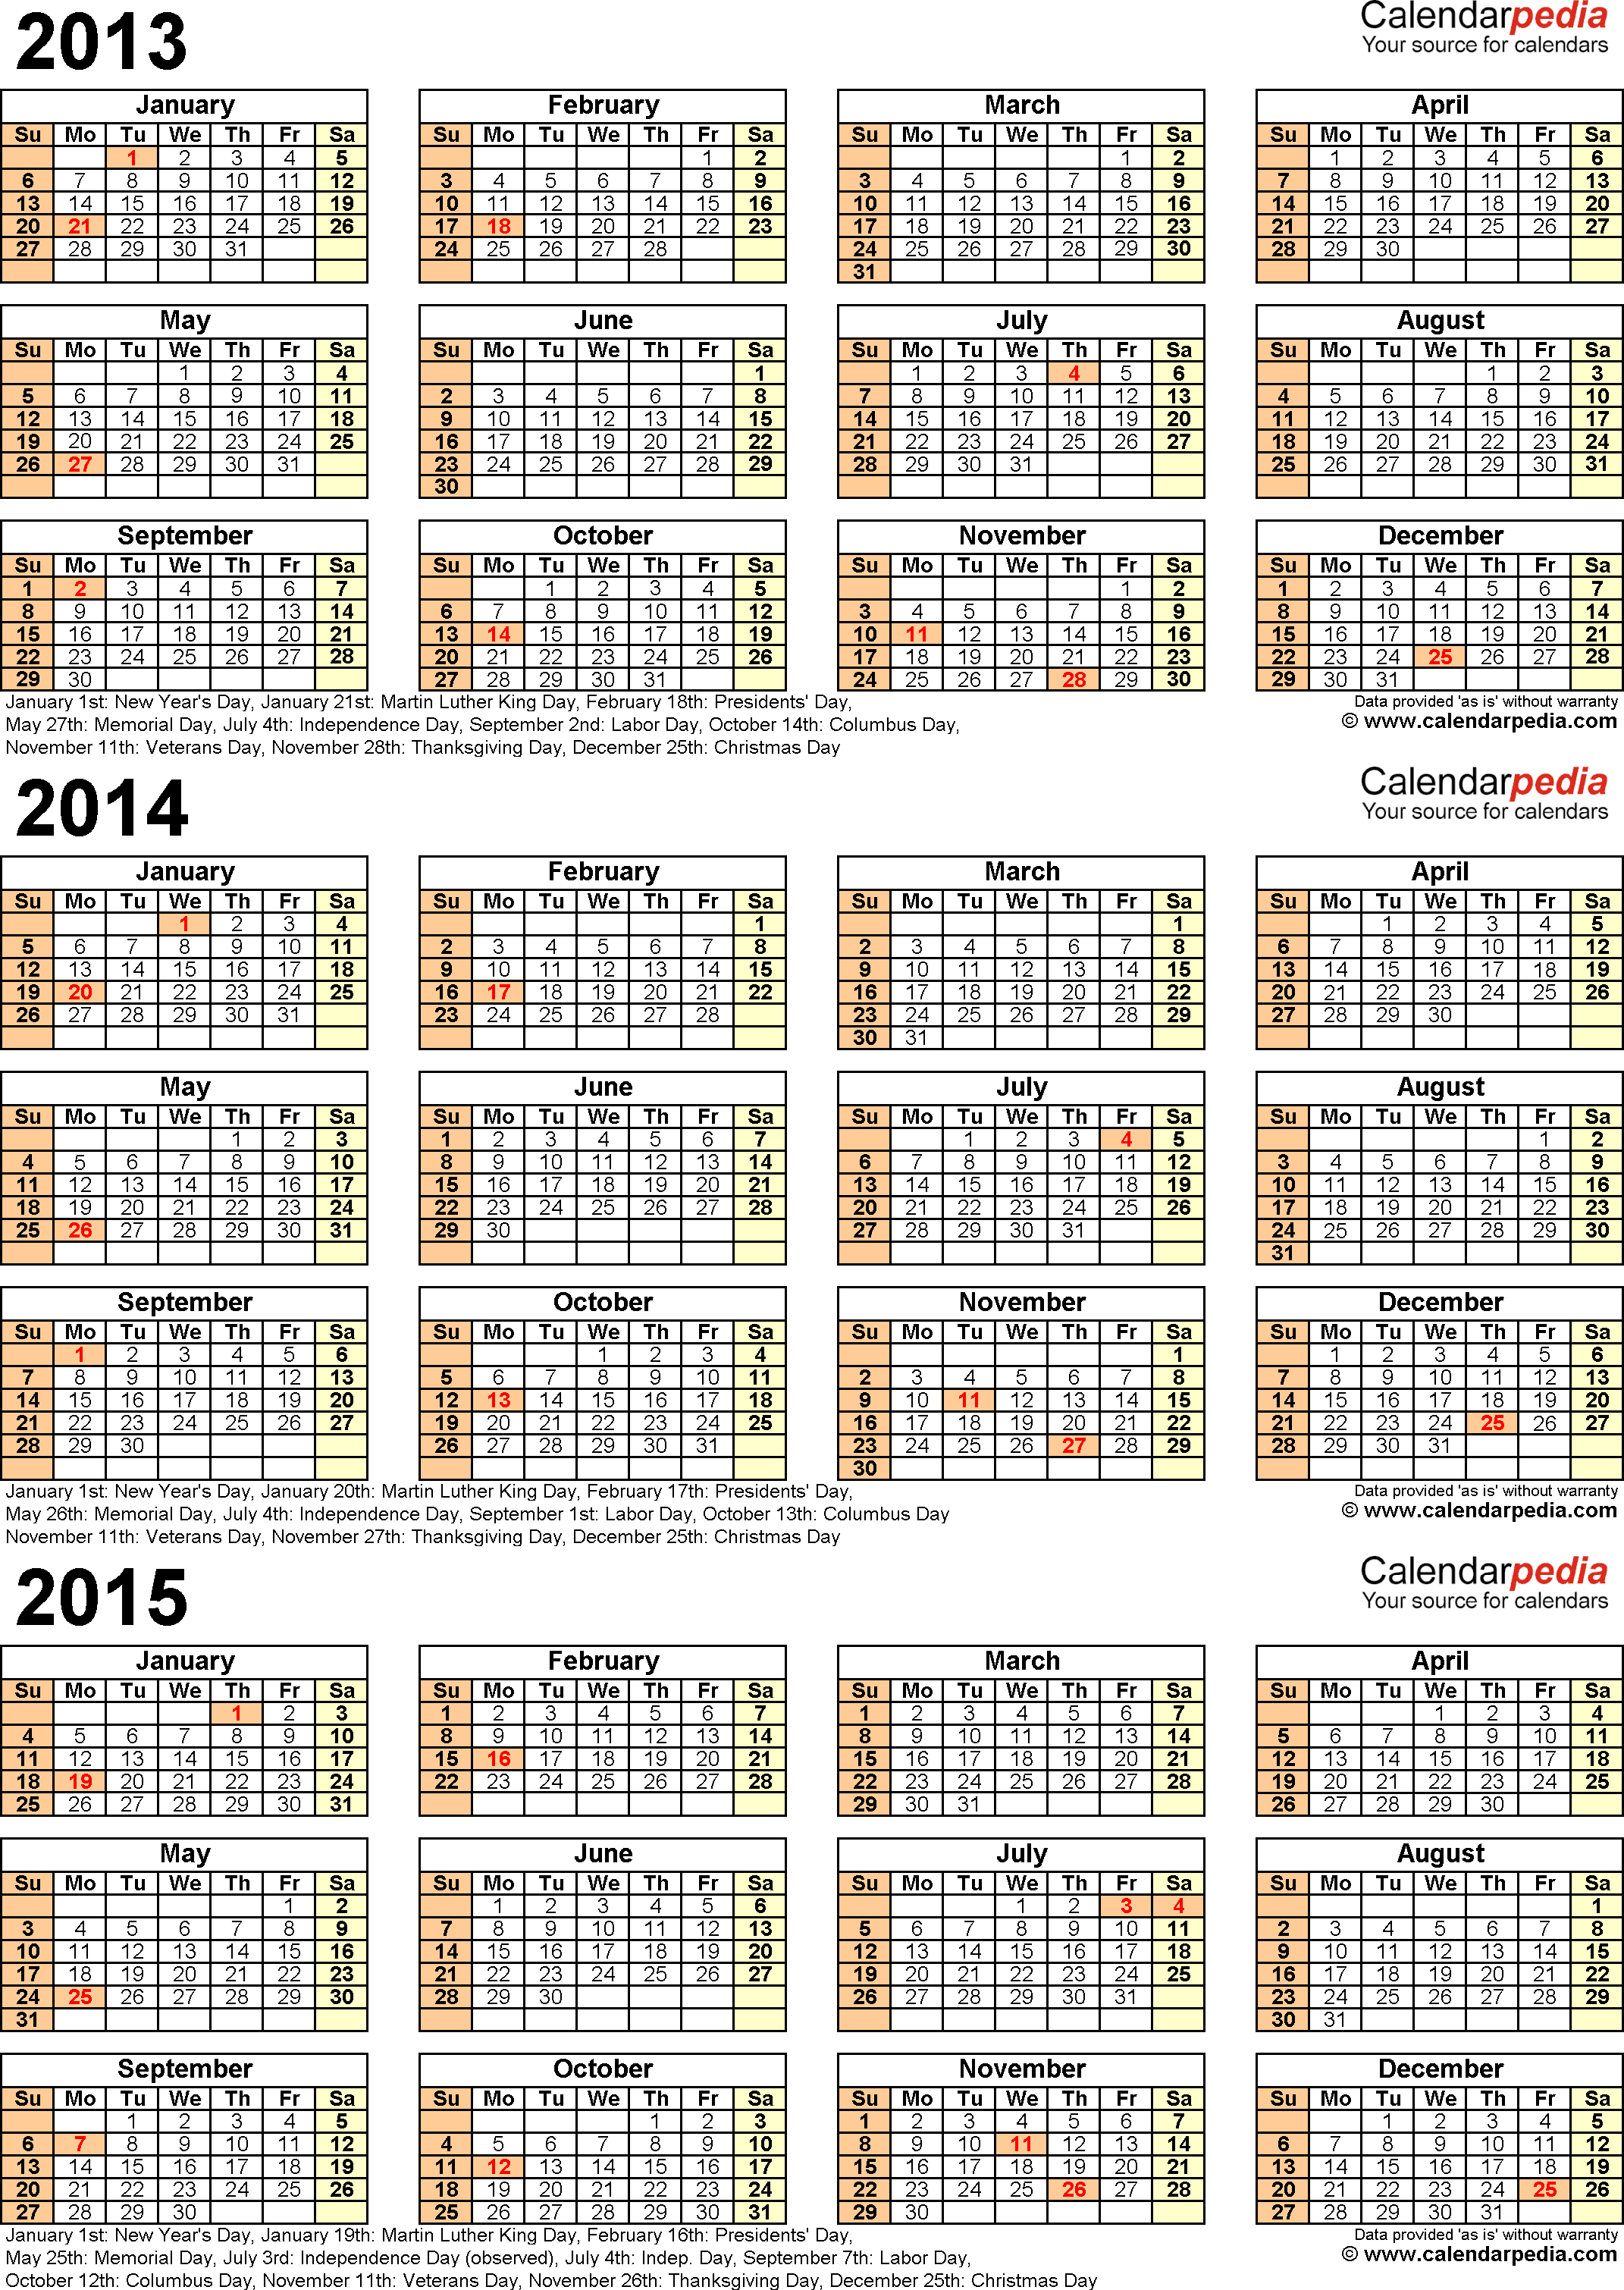 Template 4: Word template for three year calendar 2013-2015 (portrait orientation, 1 page)